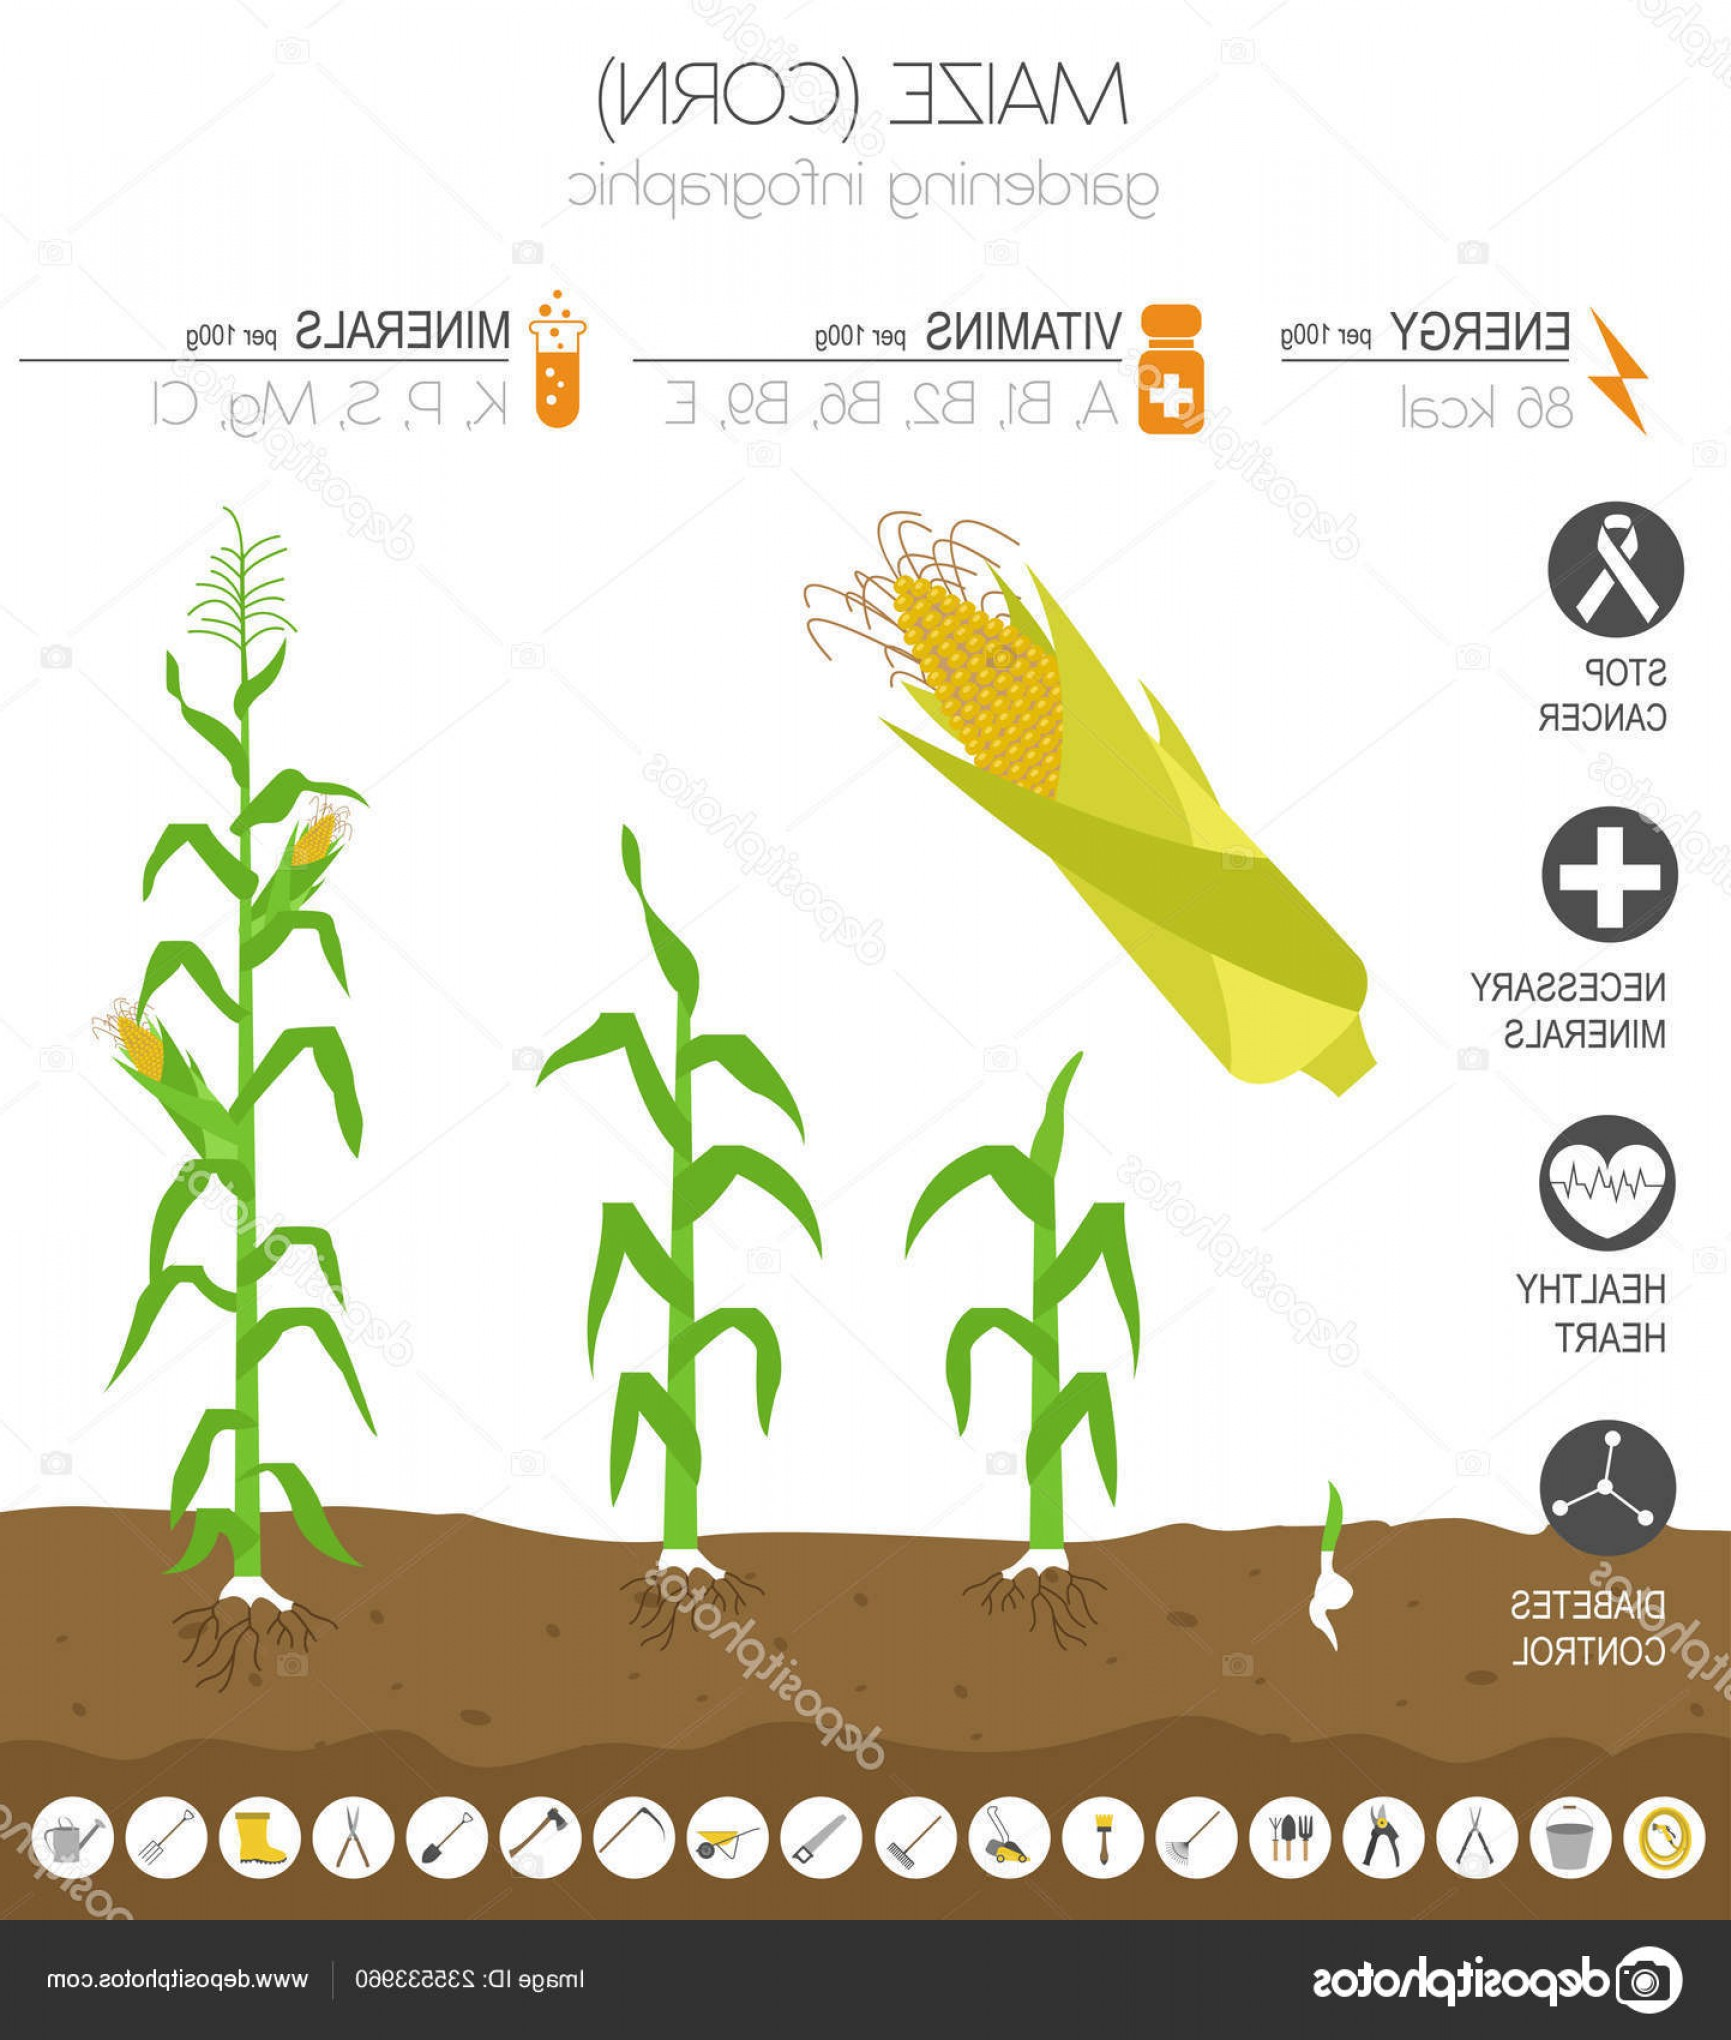 Maize Vector Tree: Stock Illustration Maize Corn Beneficial Features Graphic